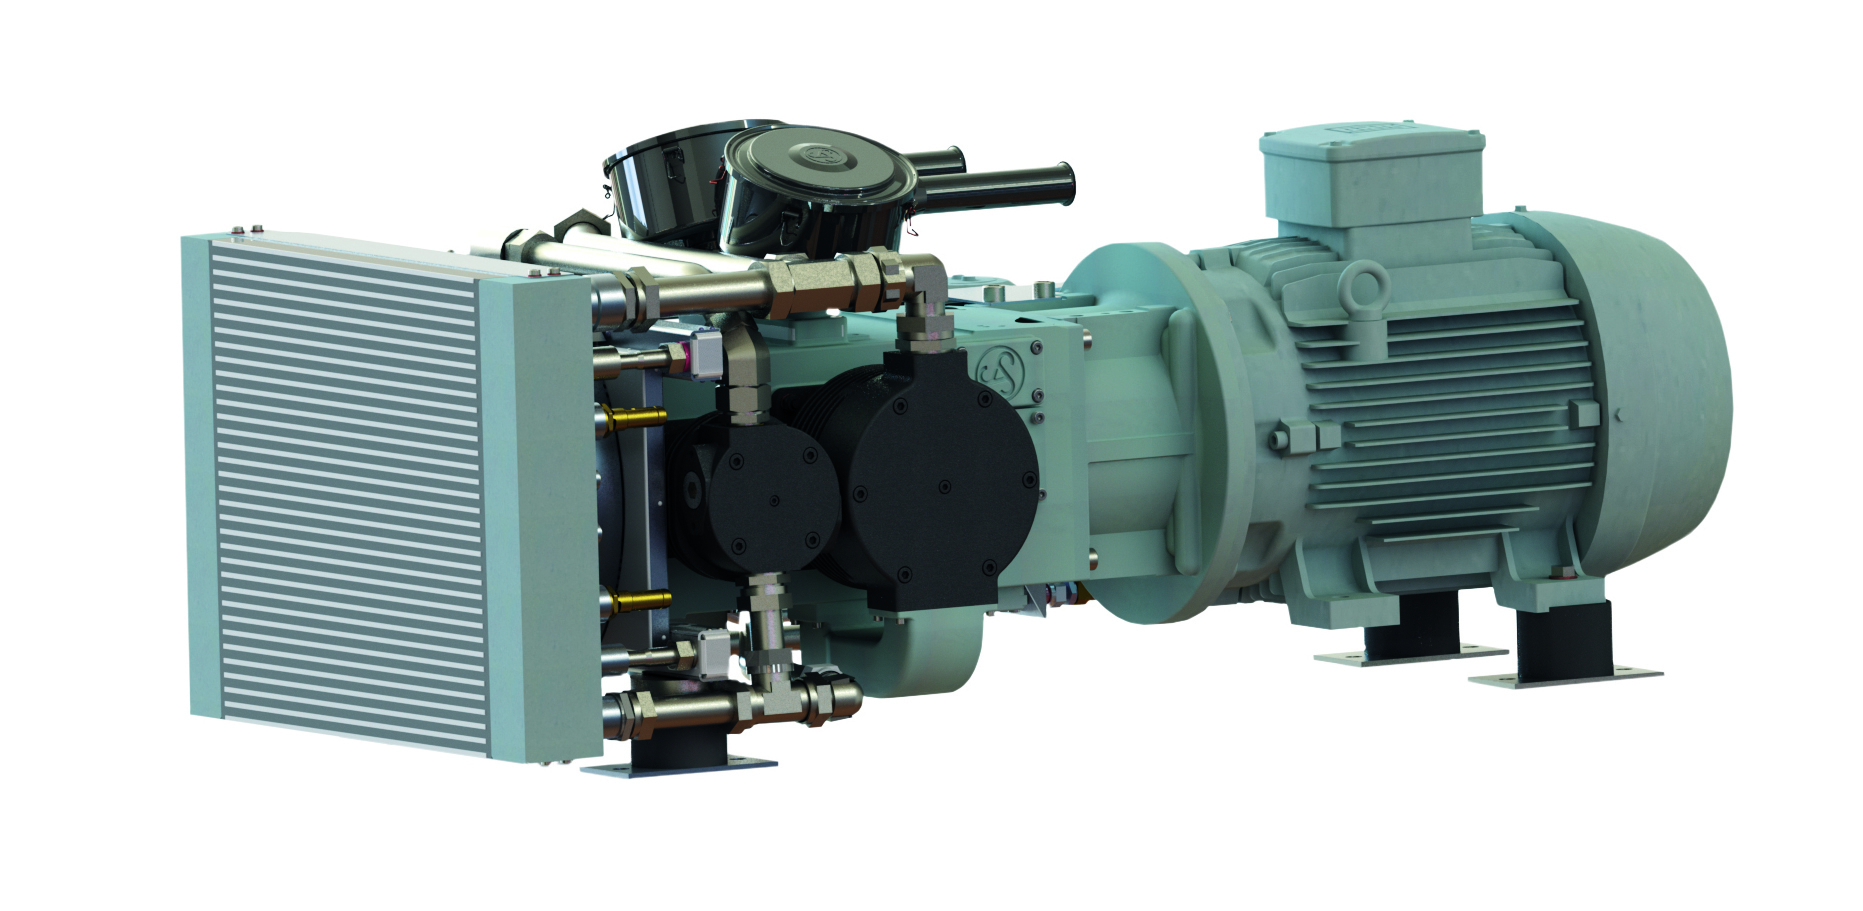 High Pressure Gas Compressor : Wp lon e larry